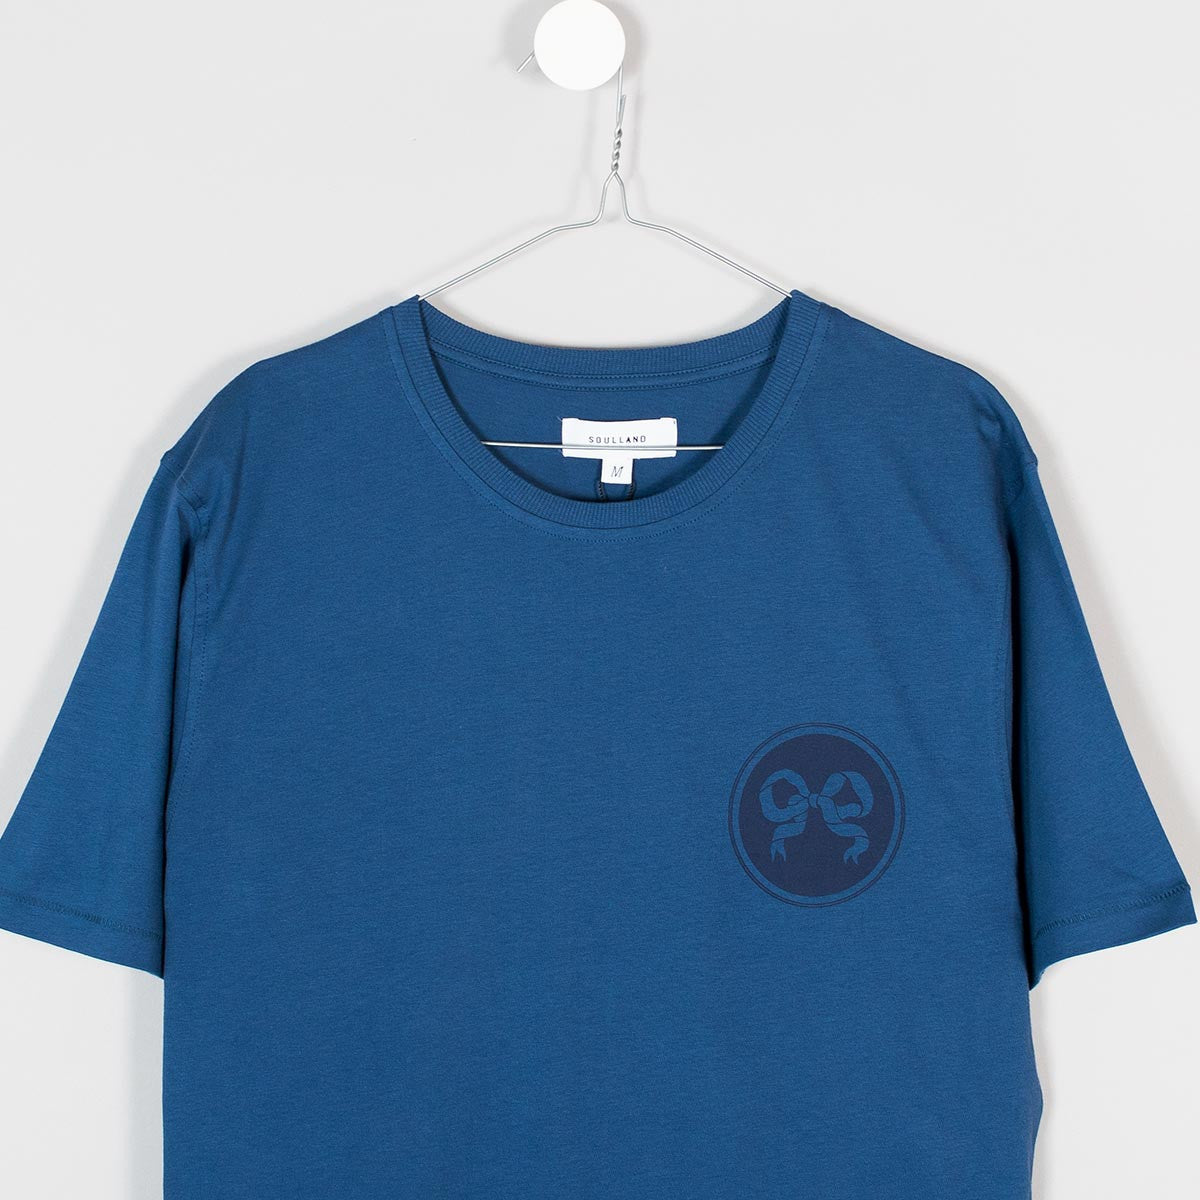 Soulland Ribbon T-Shirt – Indigo Blue - 3